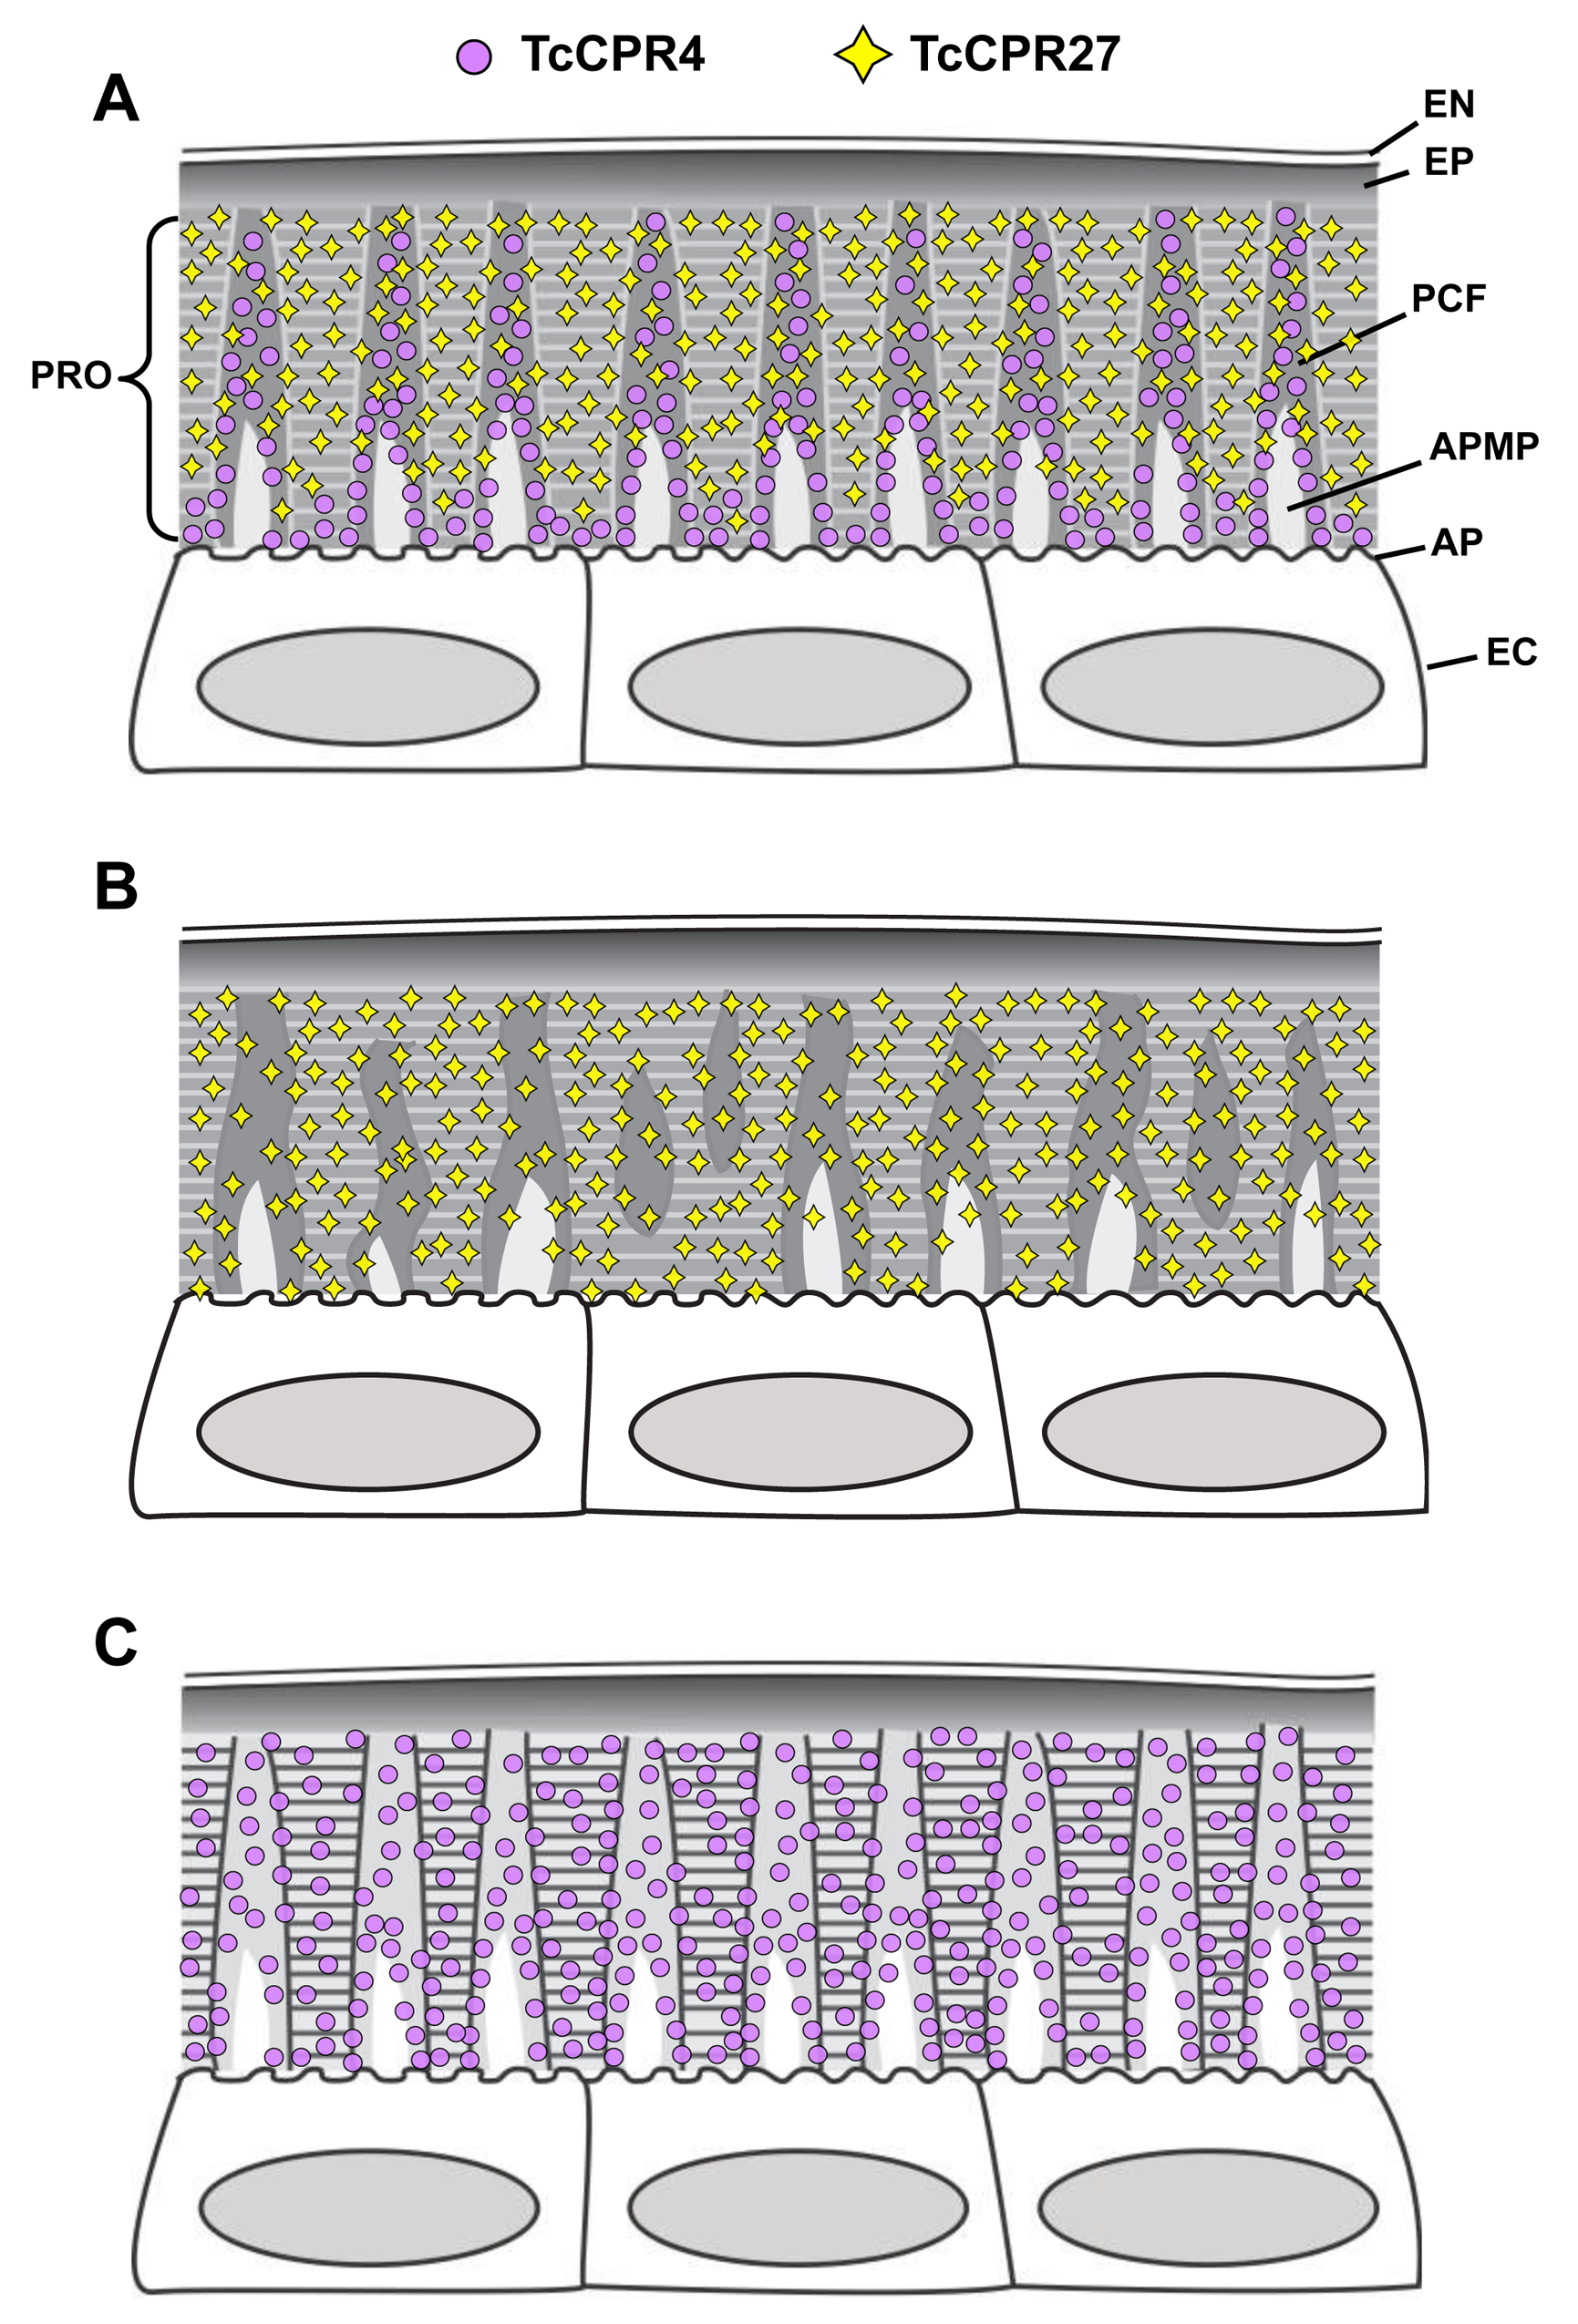 Schematic diagram of structure and localization of TcCPR4 and TcCPR27 proteins in rigid cuticle of adult <i>T</i>. <i>castaneum</i>.